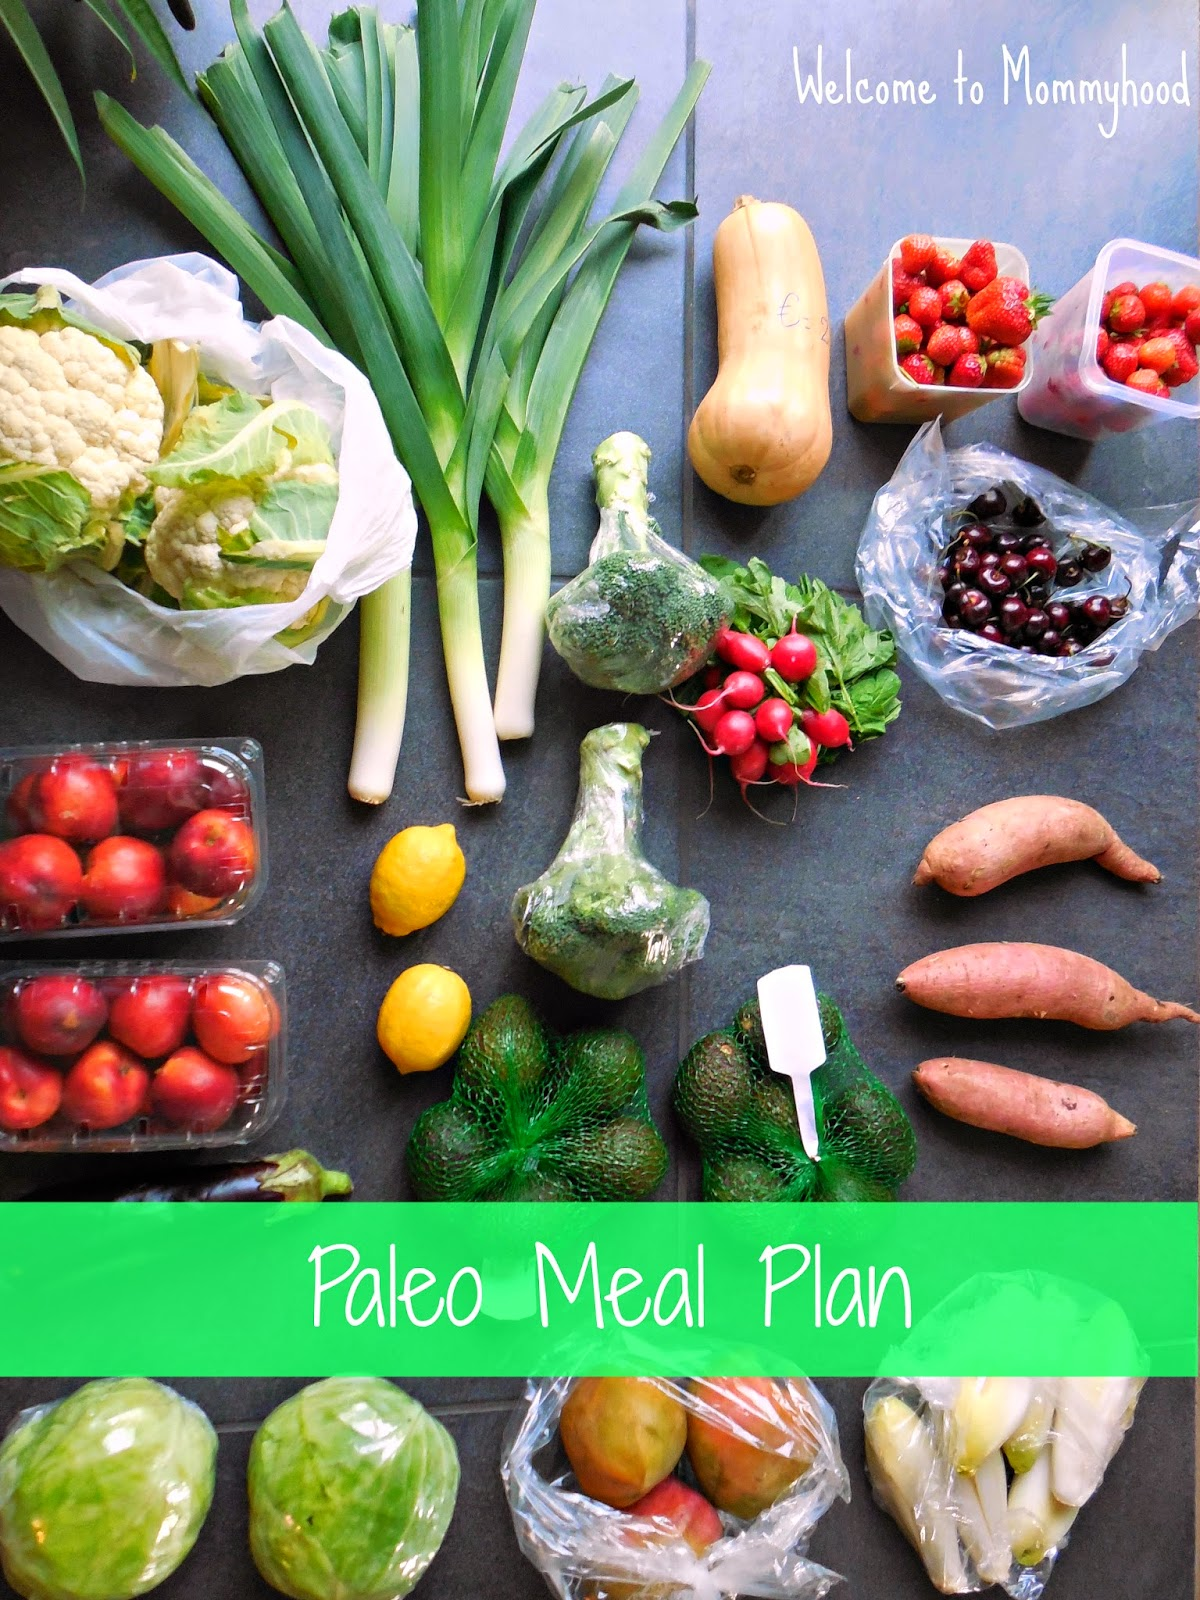 Healthy Meal Plans by Welcome to Mommyhood: This week, we're going paleo!